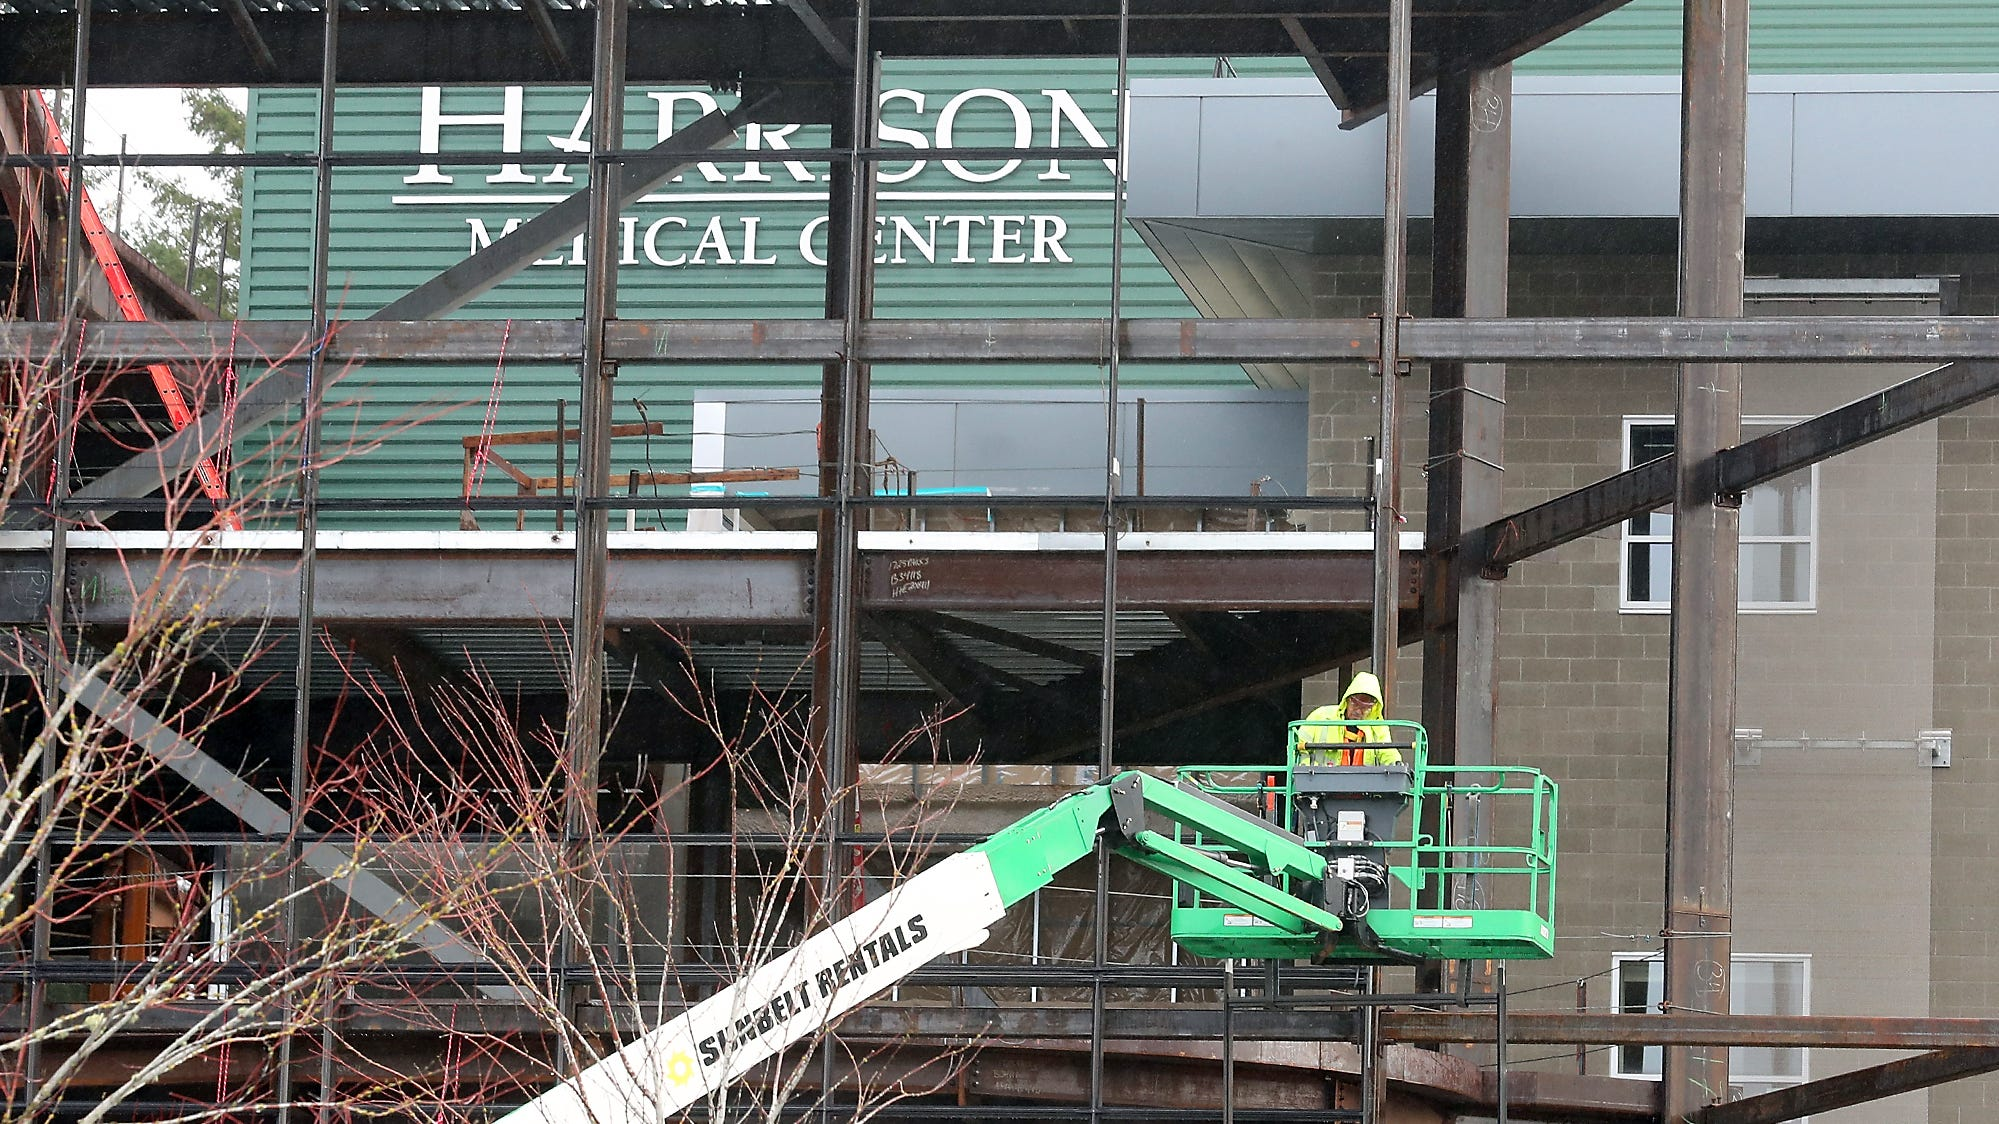 A construction worker operates a lift at Harrison Medical Center in Silverdale on Wednesday, December 12, 2018.